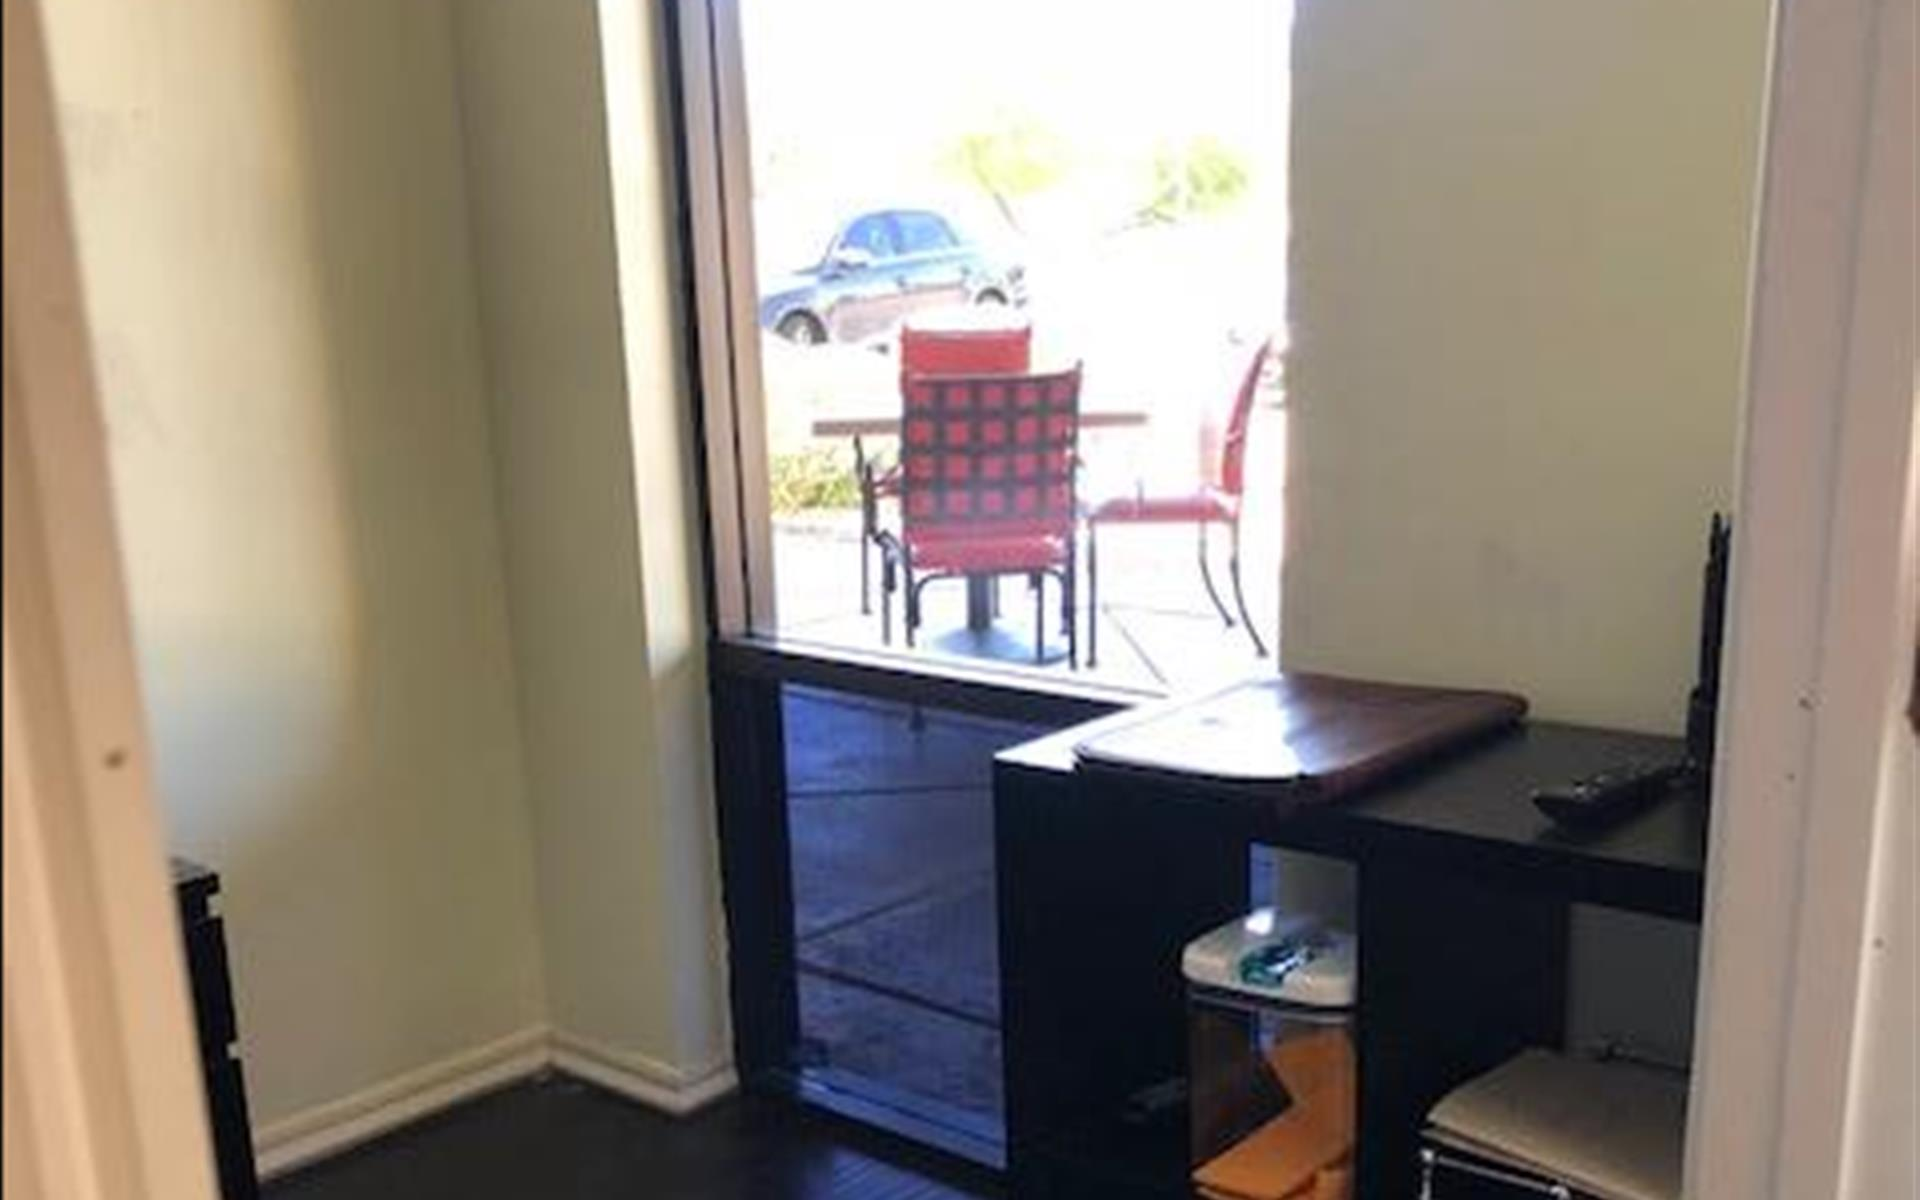 Just My Office - Private Office